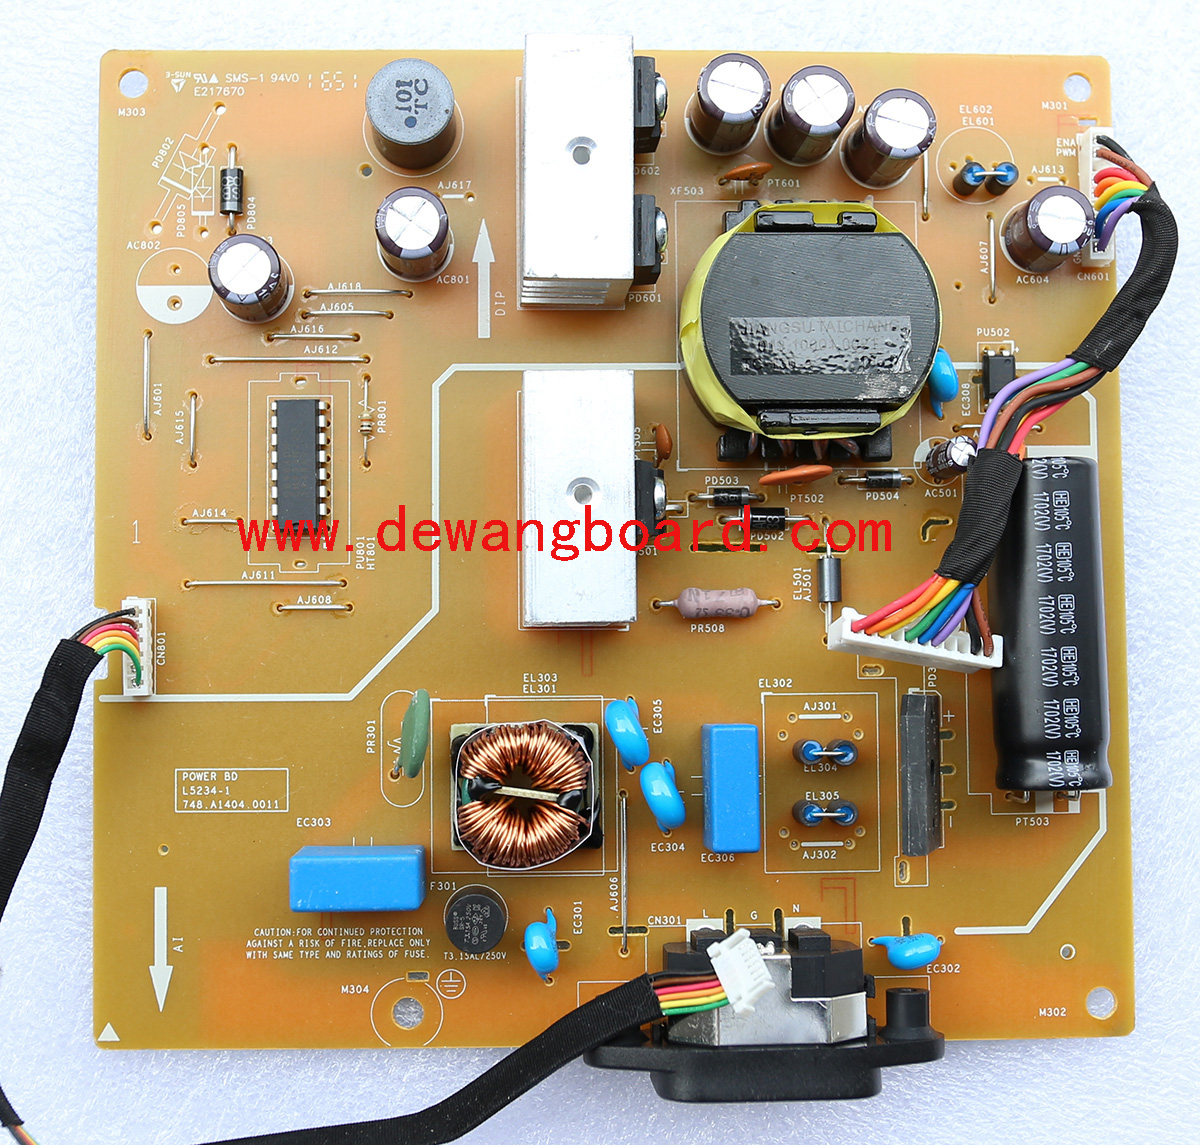 dell U2417H supply power board 748.A1404.0011